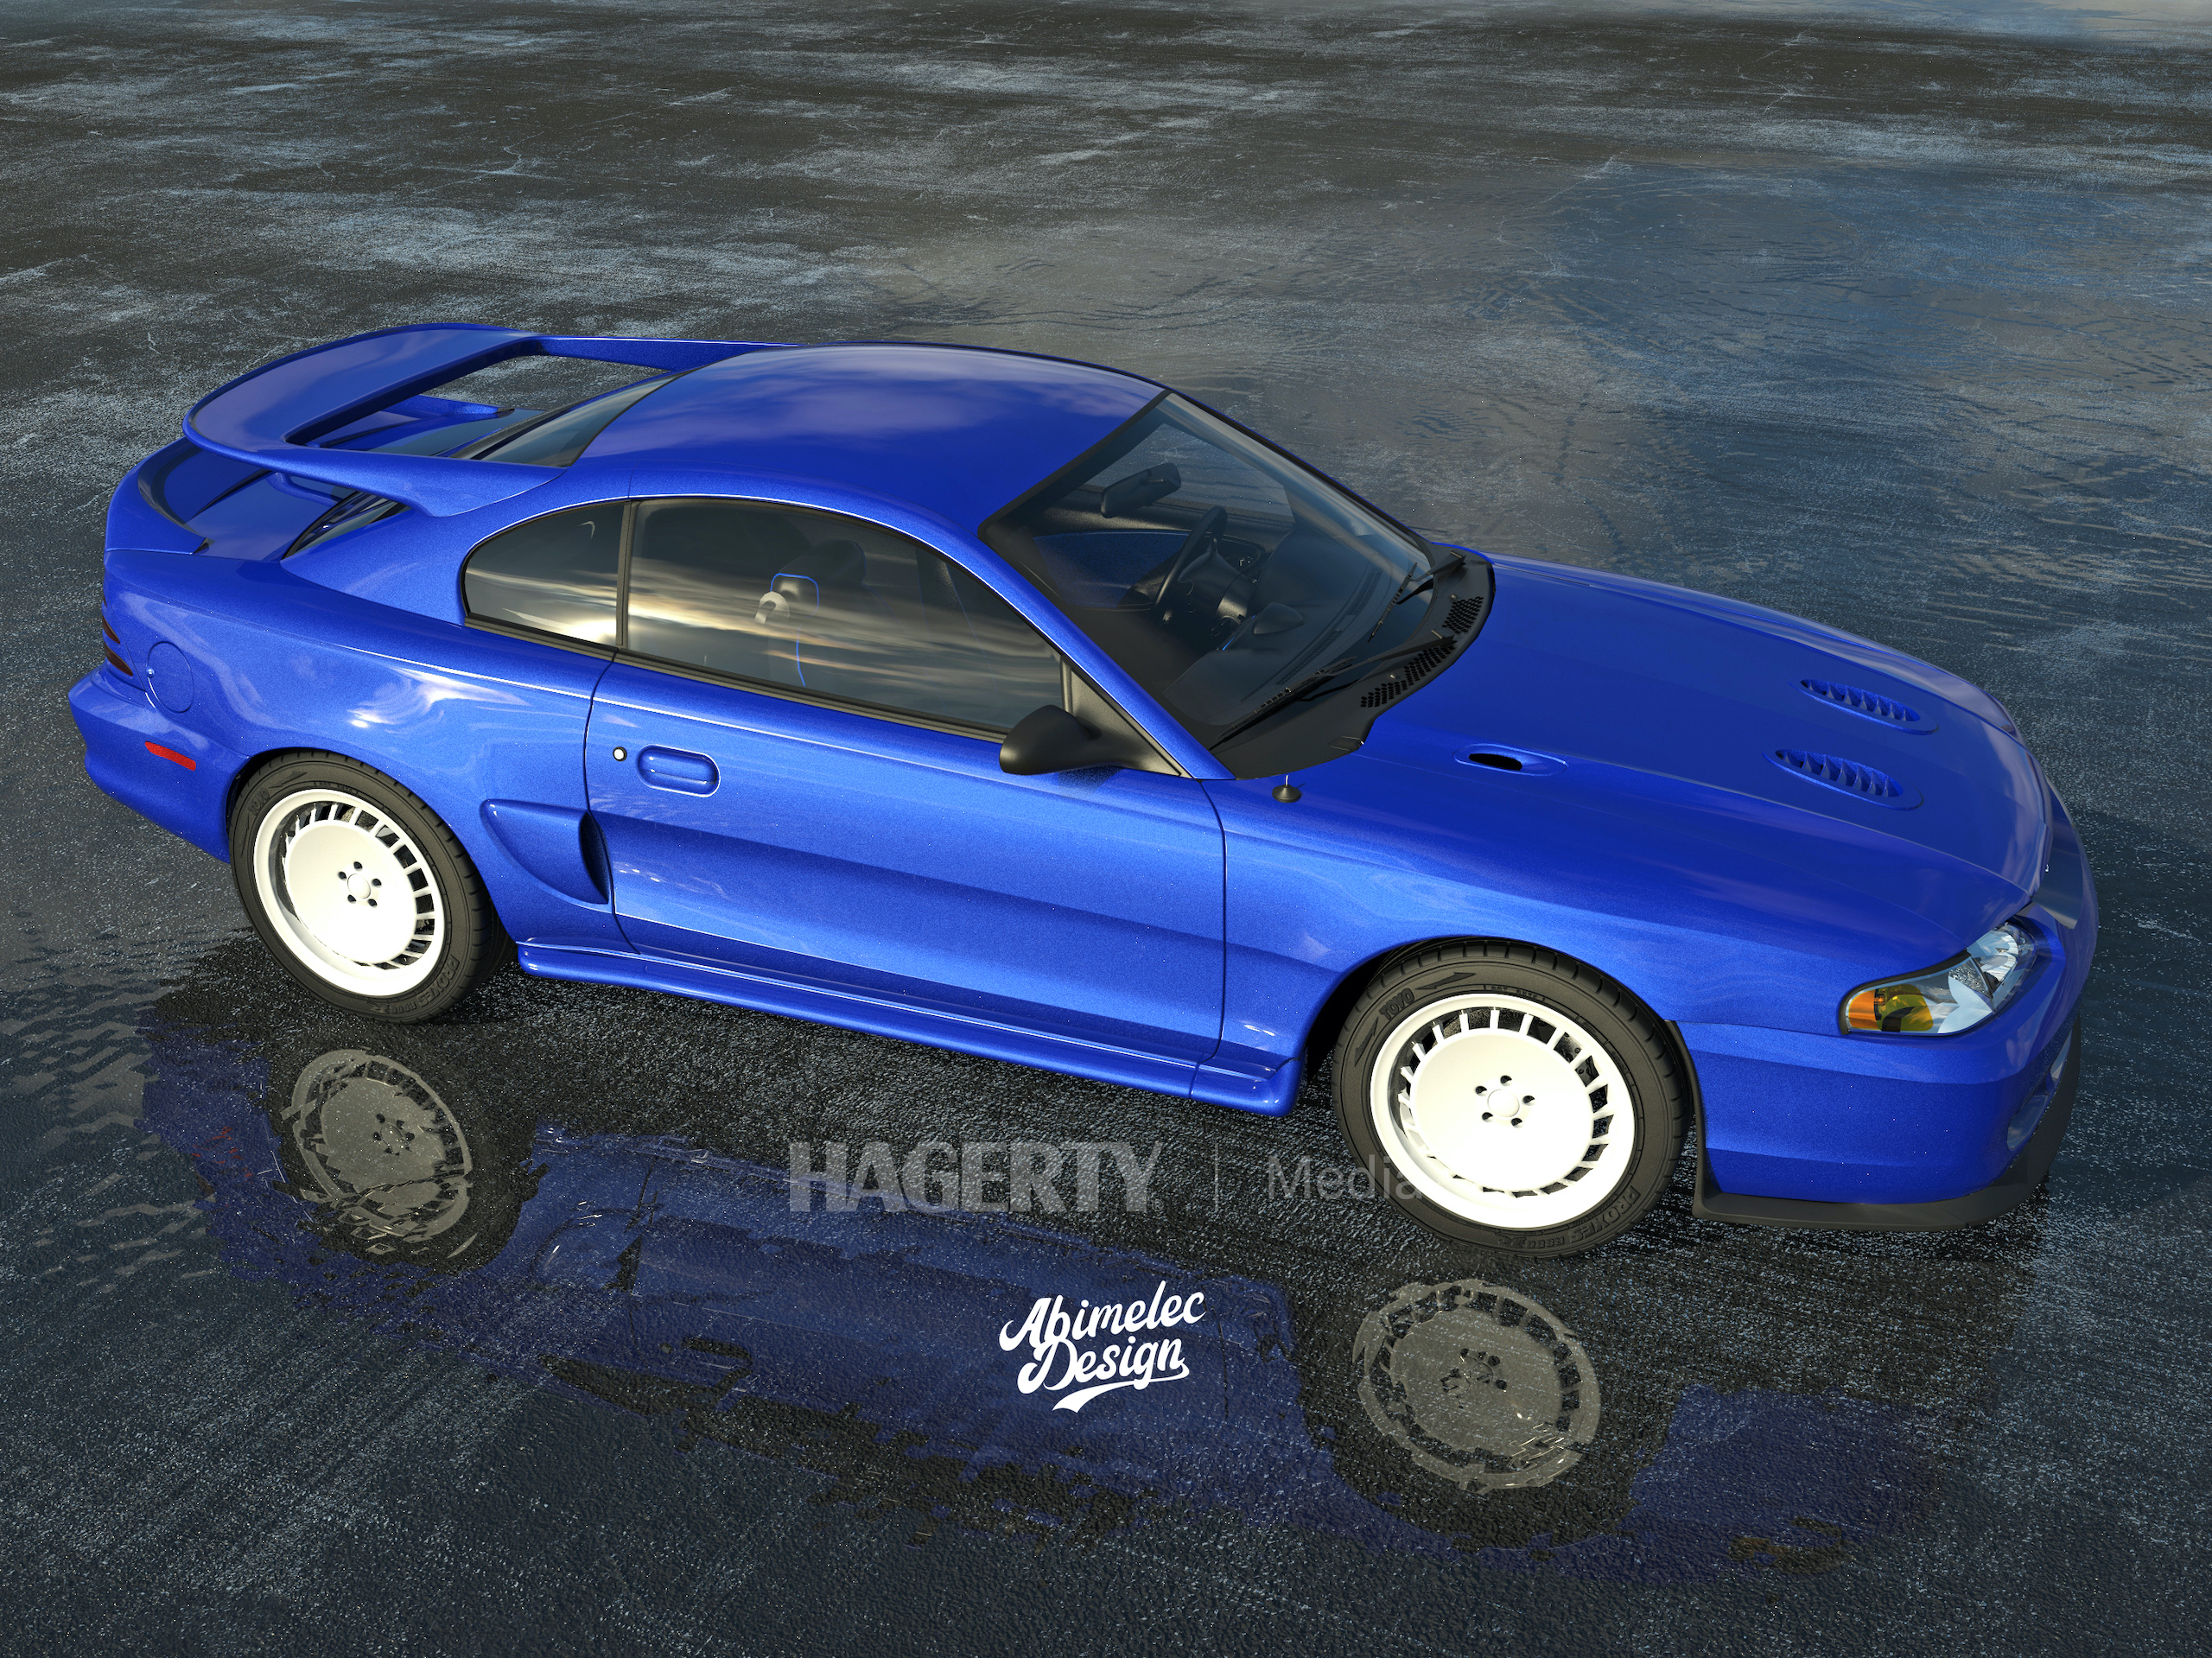 Mustang Cosworth blue